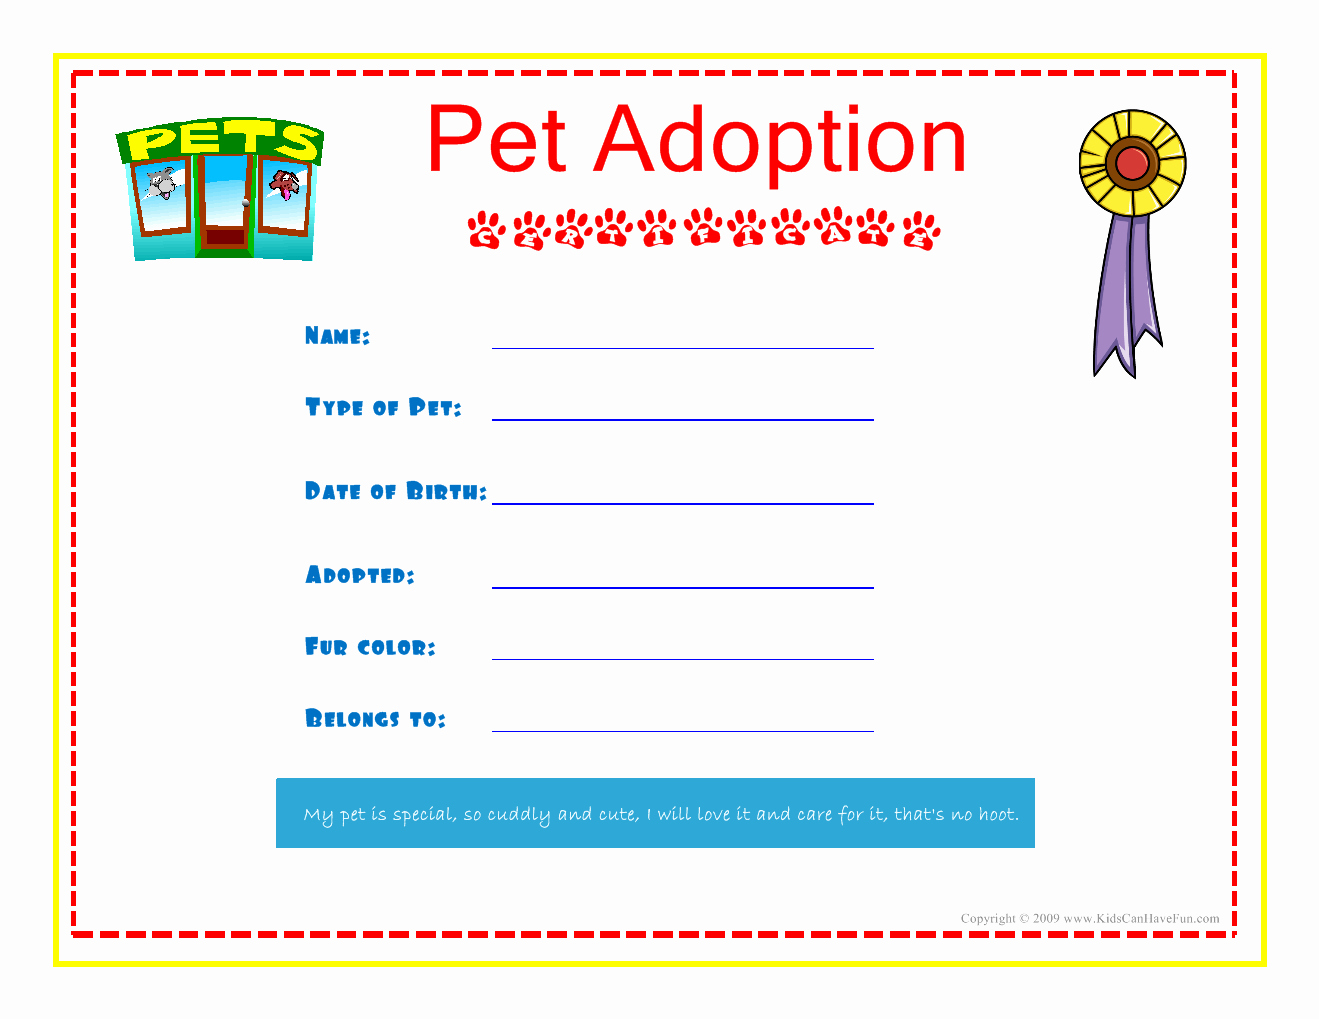 Free Printable Dog Birth Certificate Awesome Pet Adoption Certificate for the Kids to Fill Out About